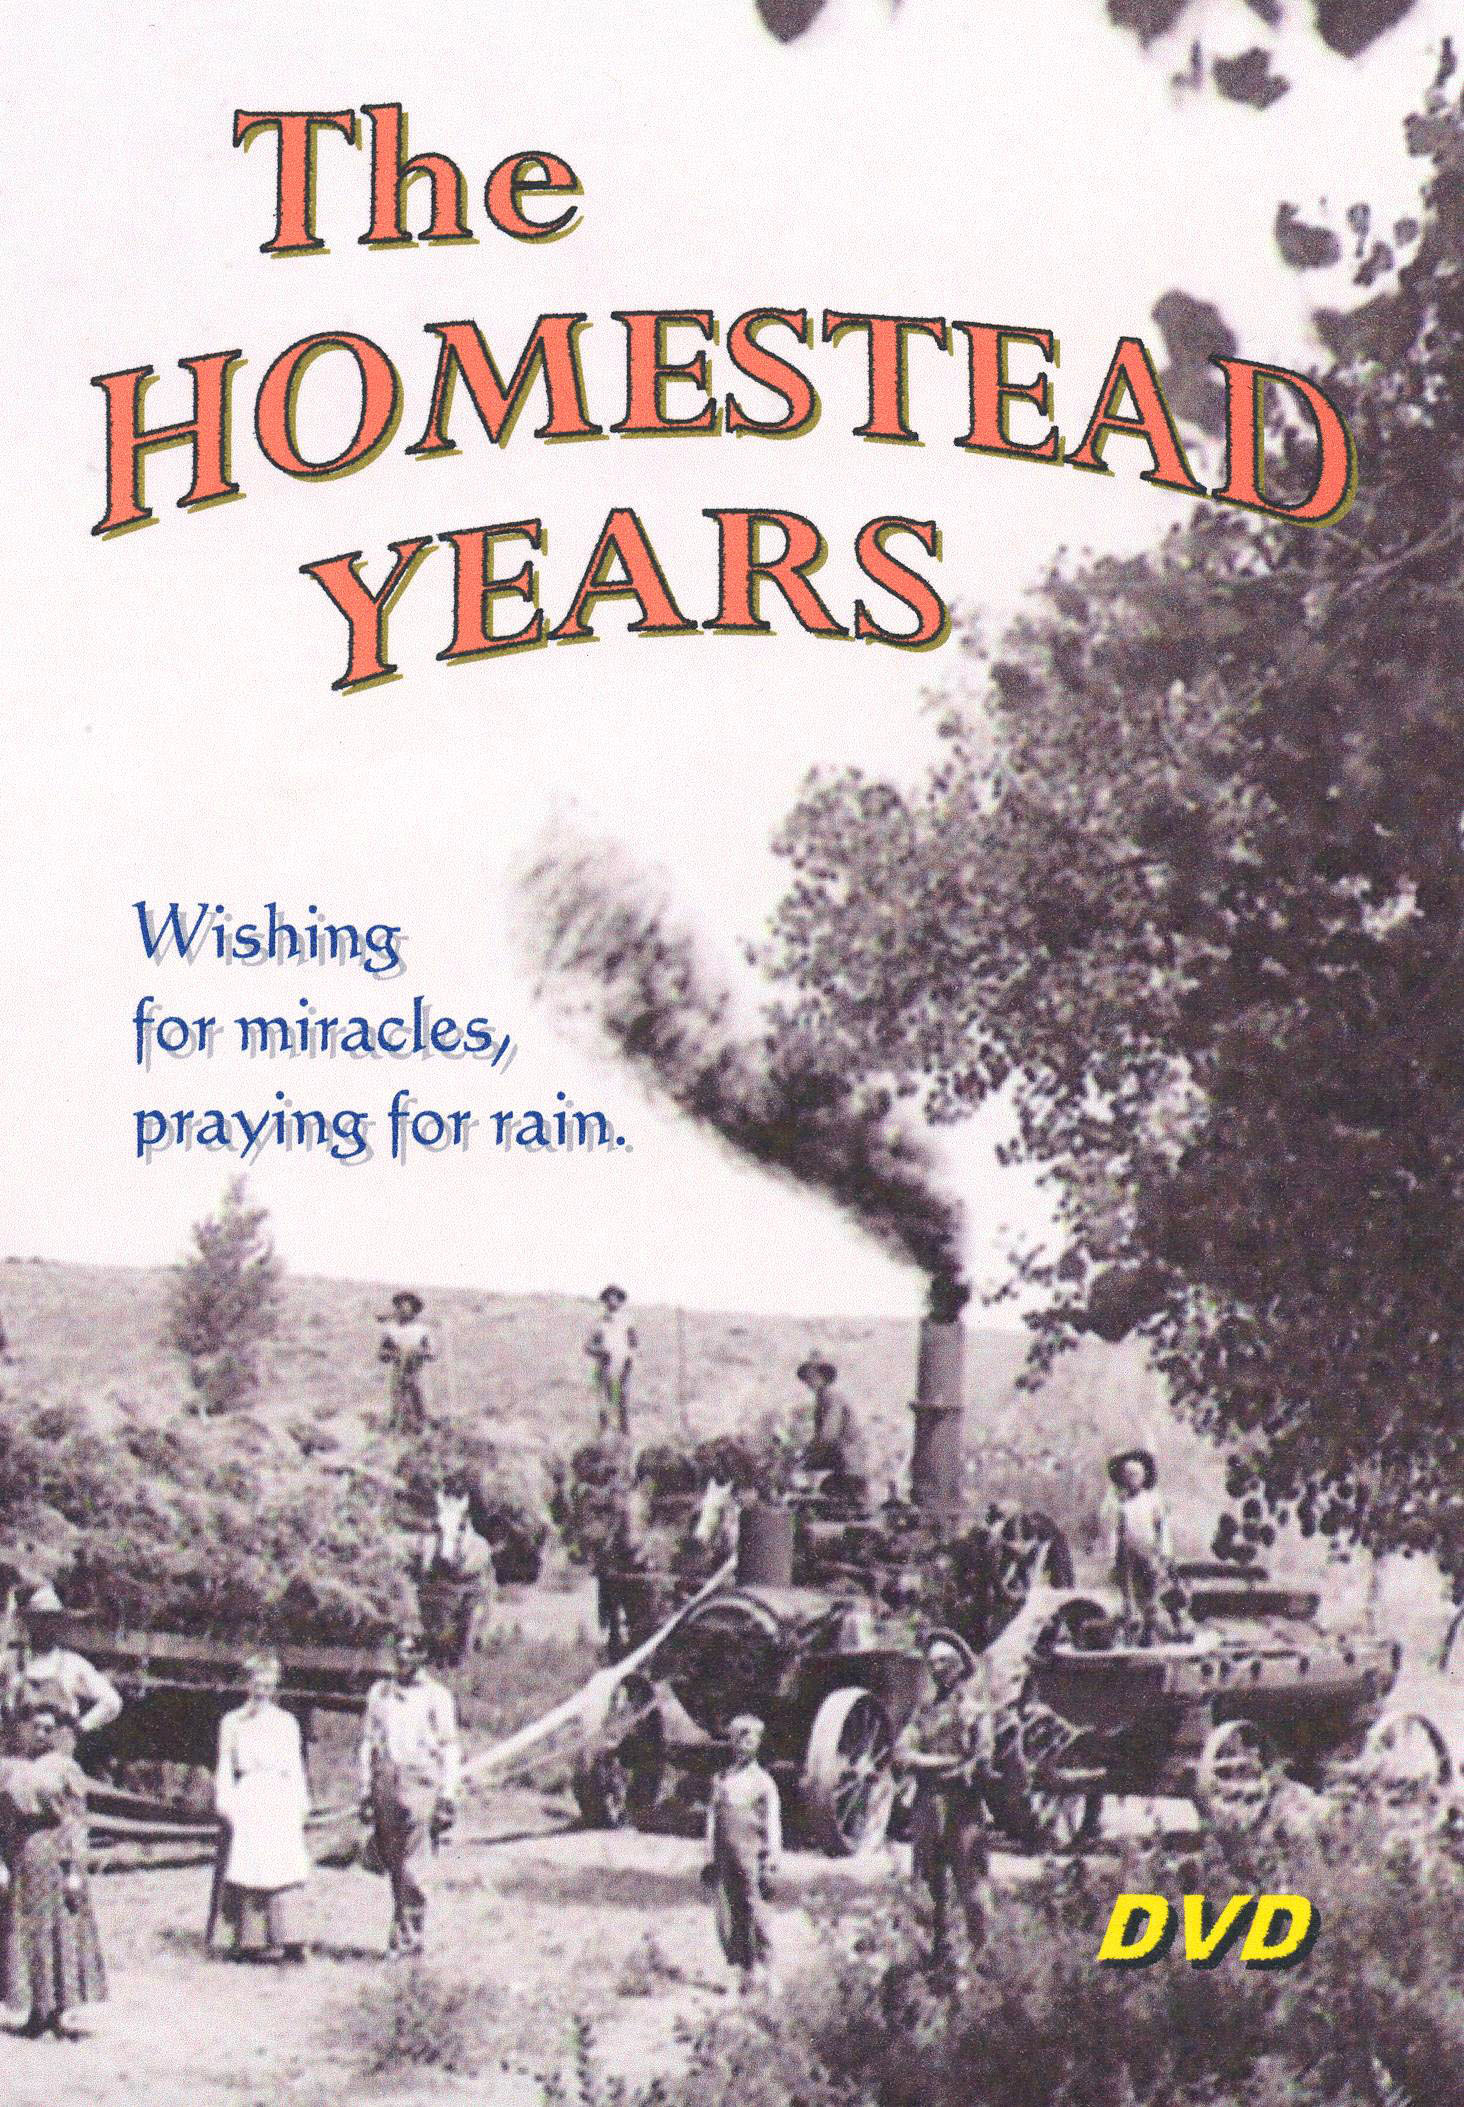 The Homestead Years